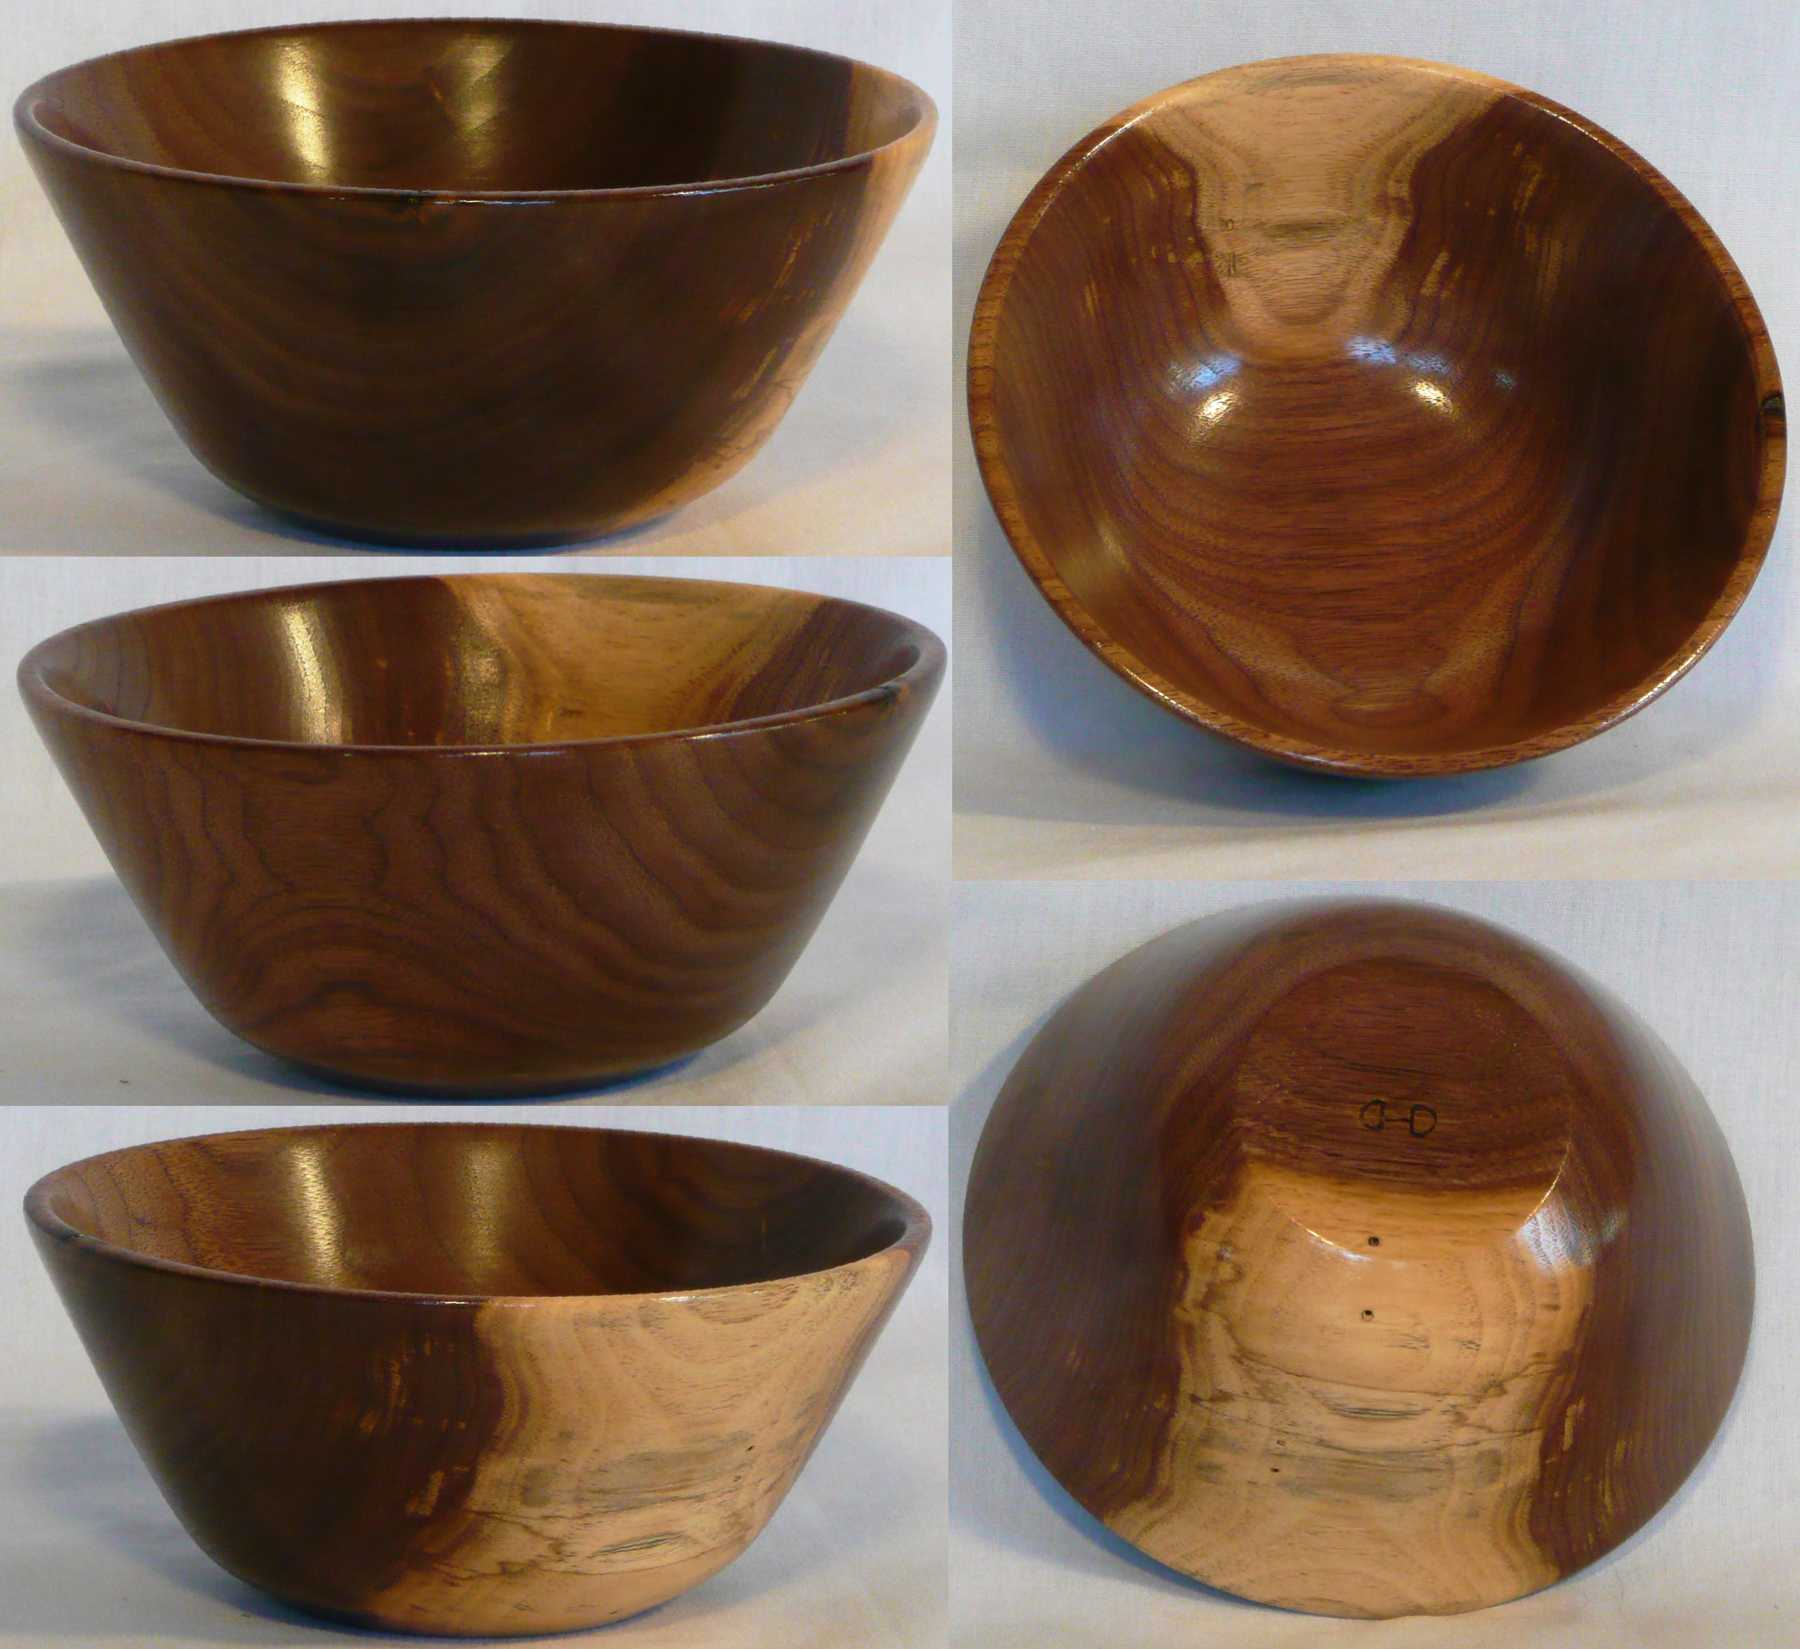 Walnut hand turned bowl with highlight of sapwood on the side by Cynthia D. Haney.